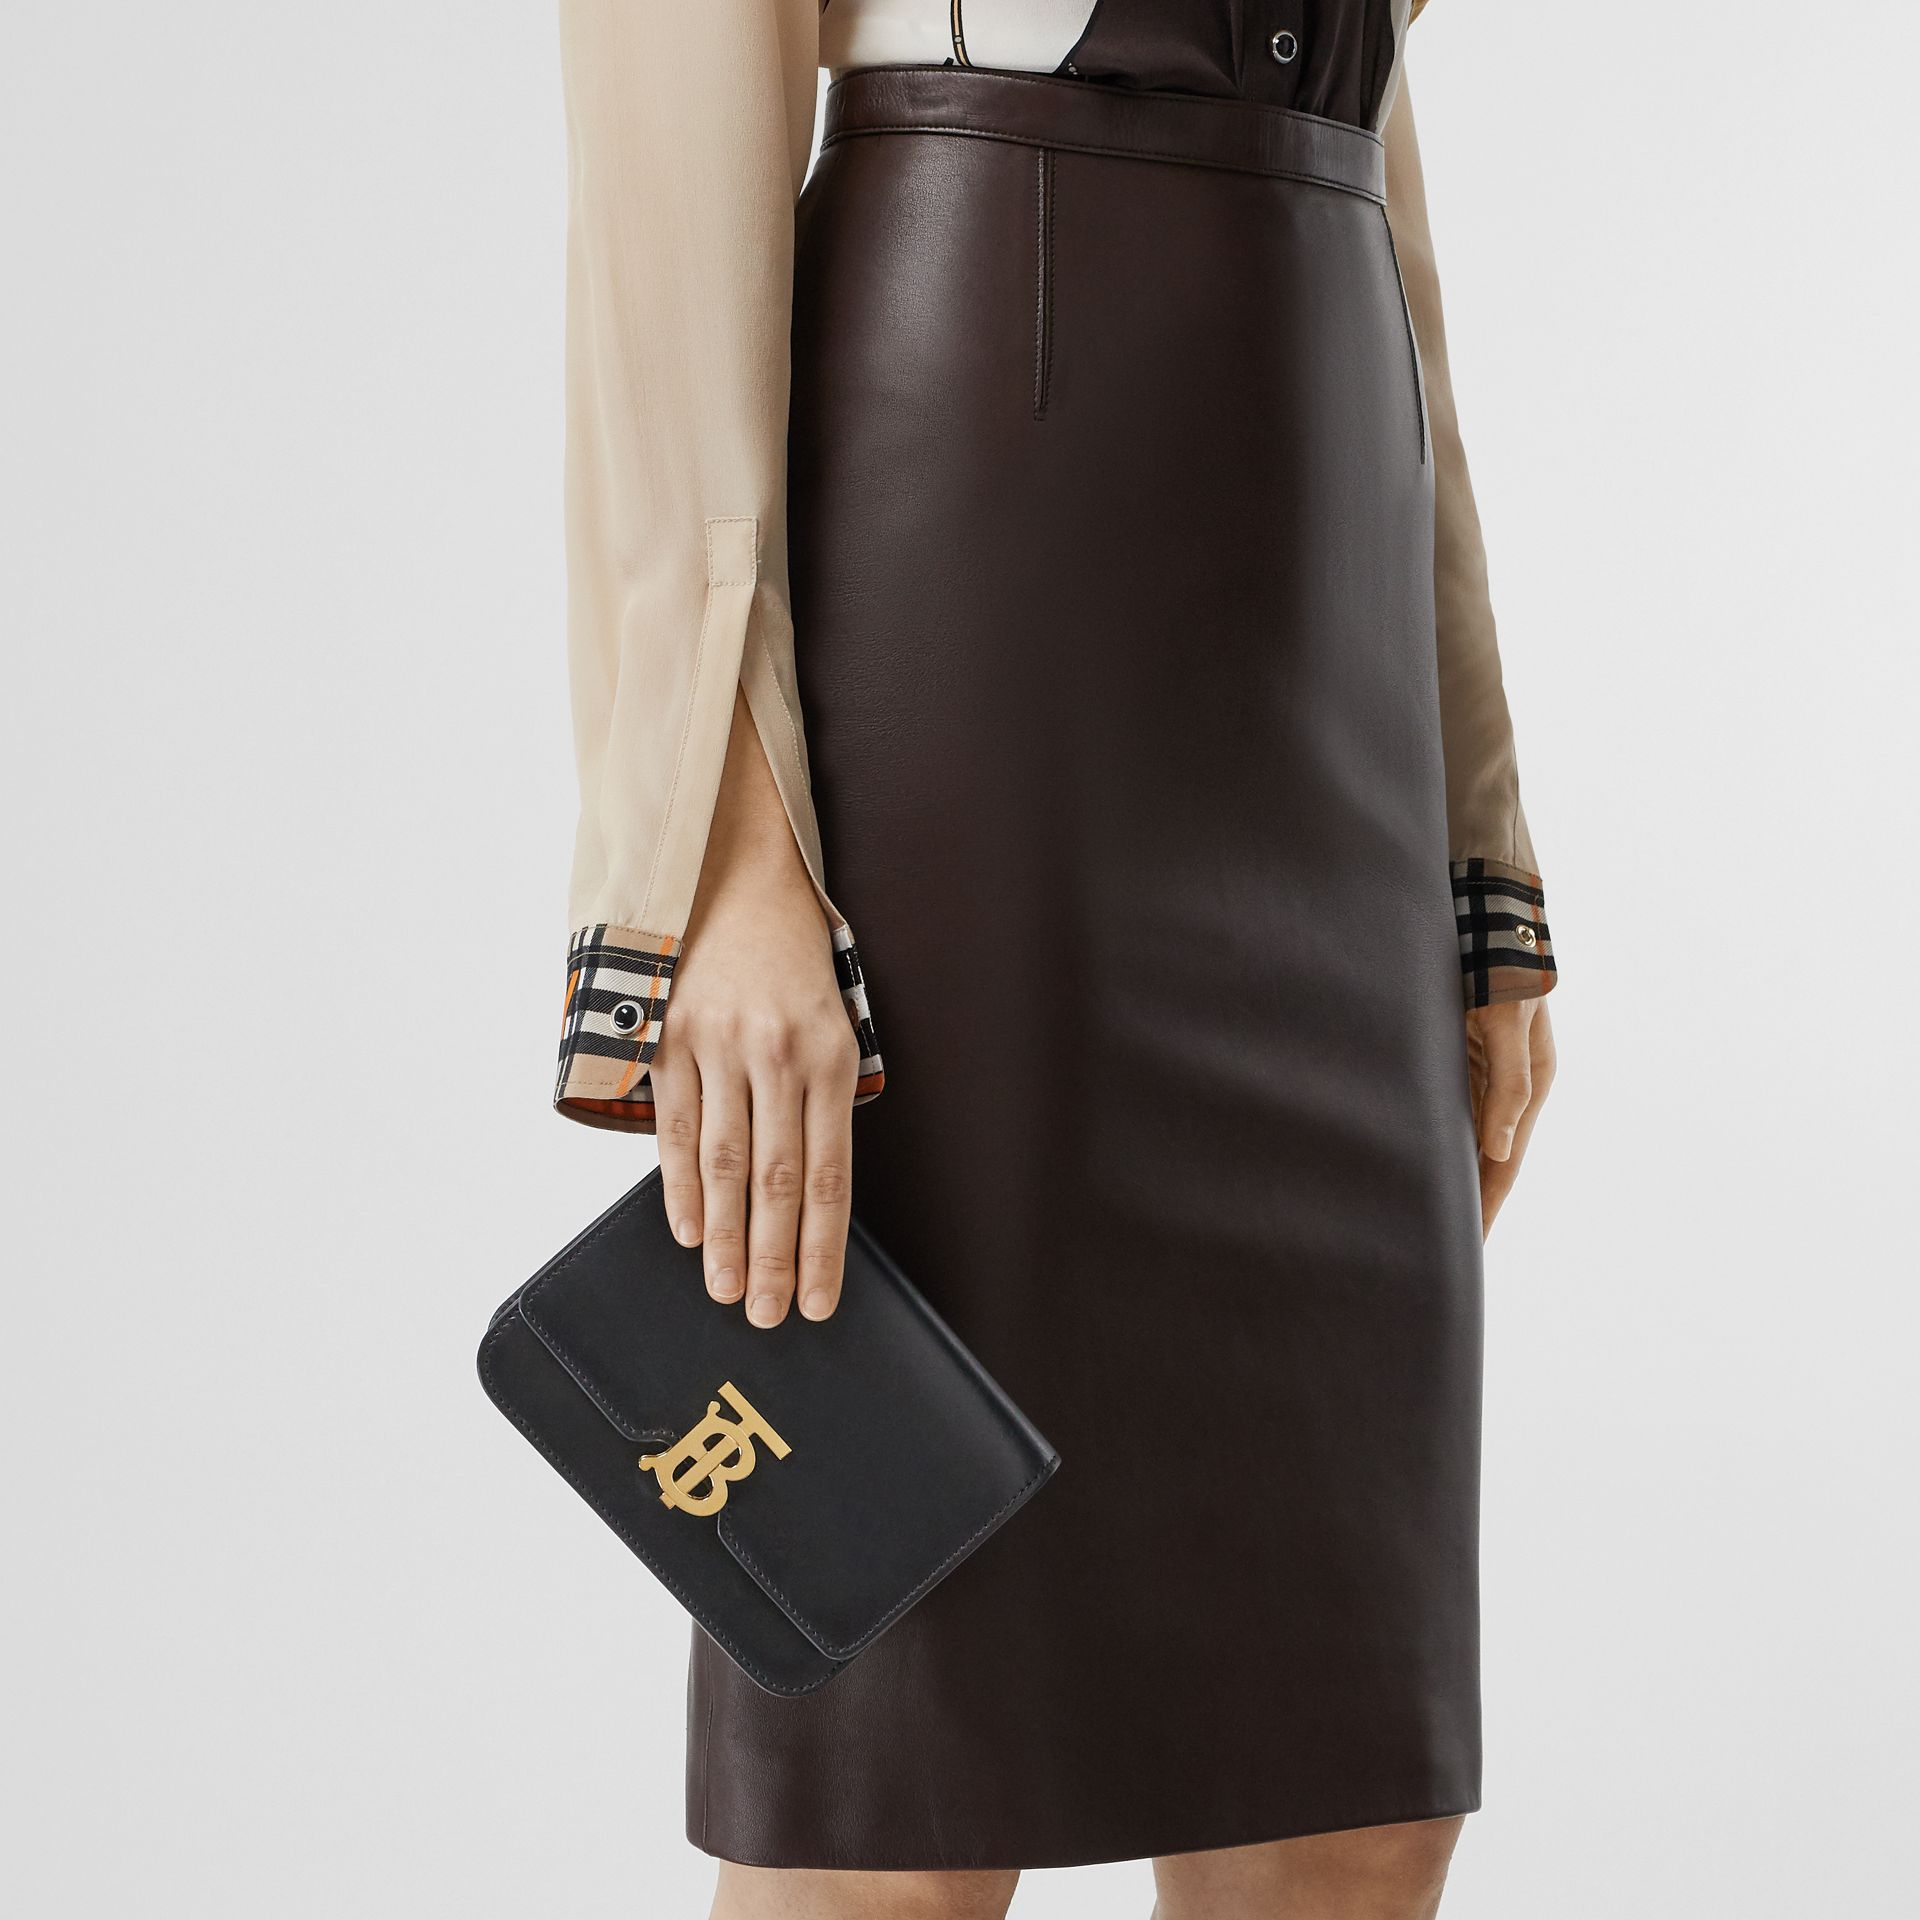 Belted Leather TB Bag in Black - Women | Burberry United States - gallery image 2